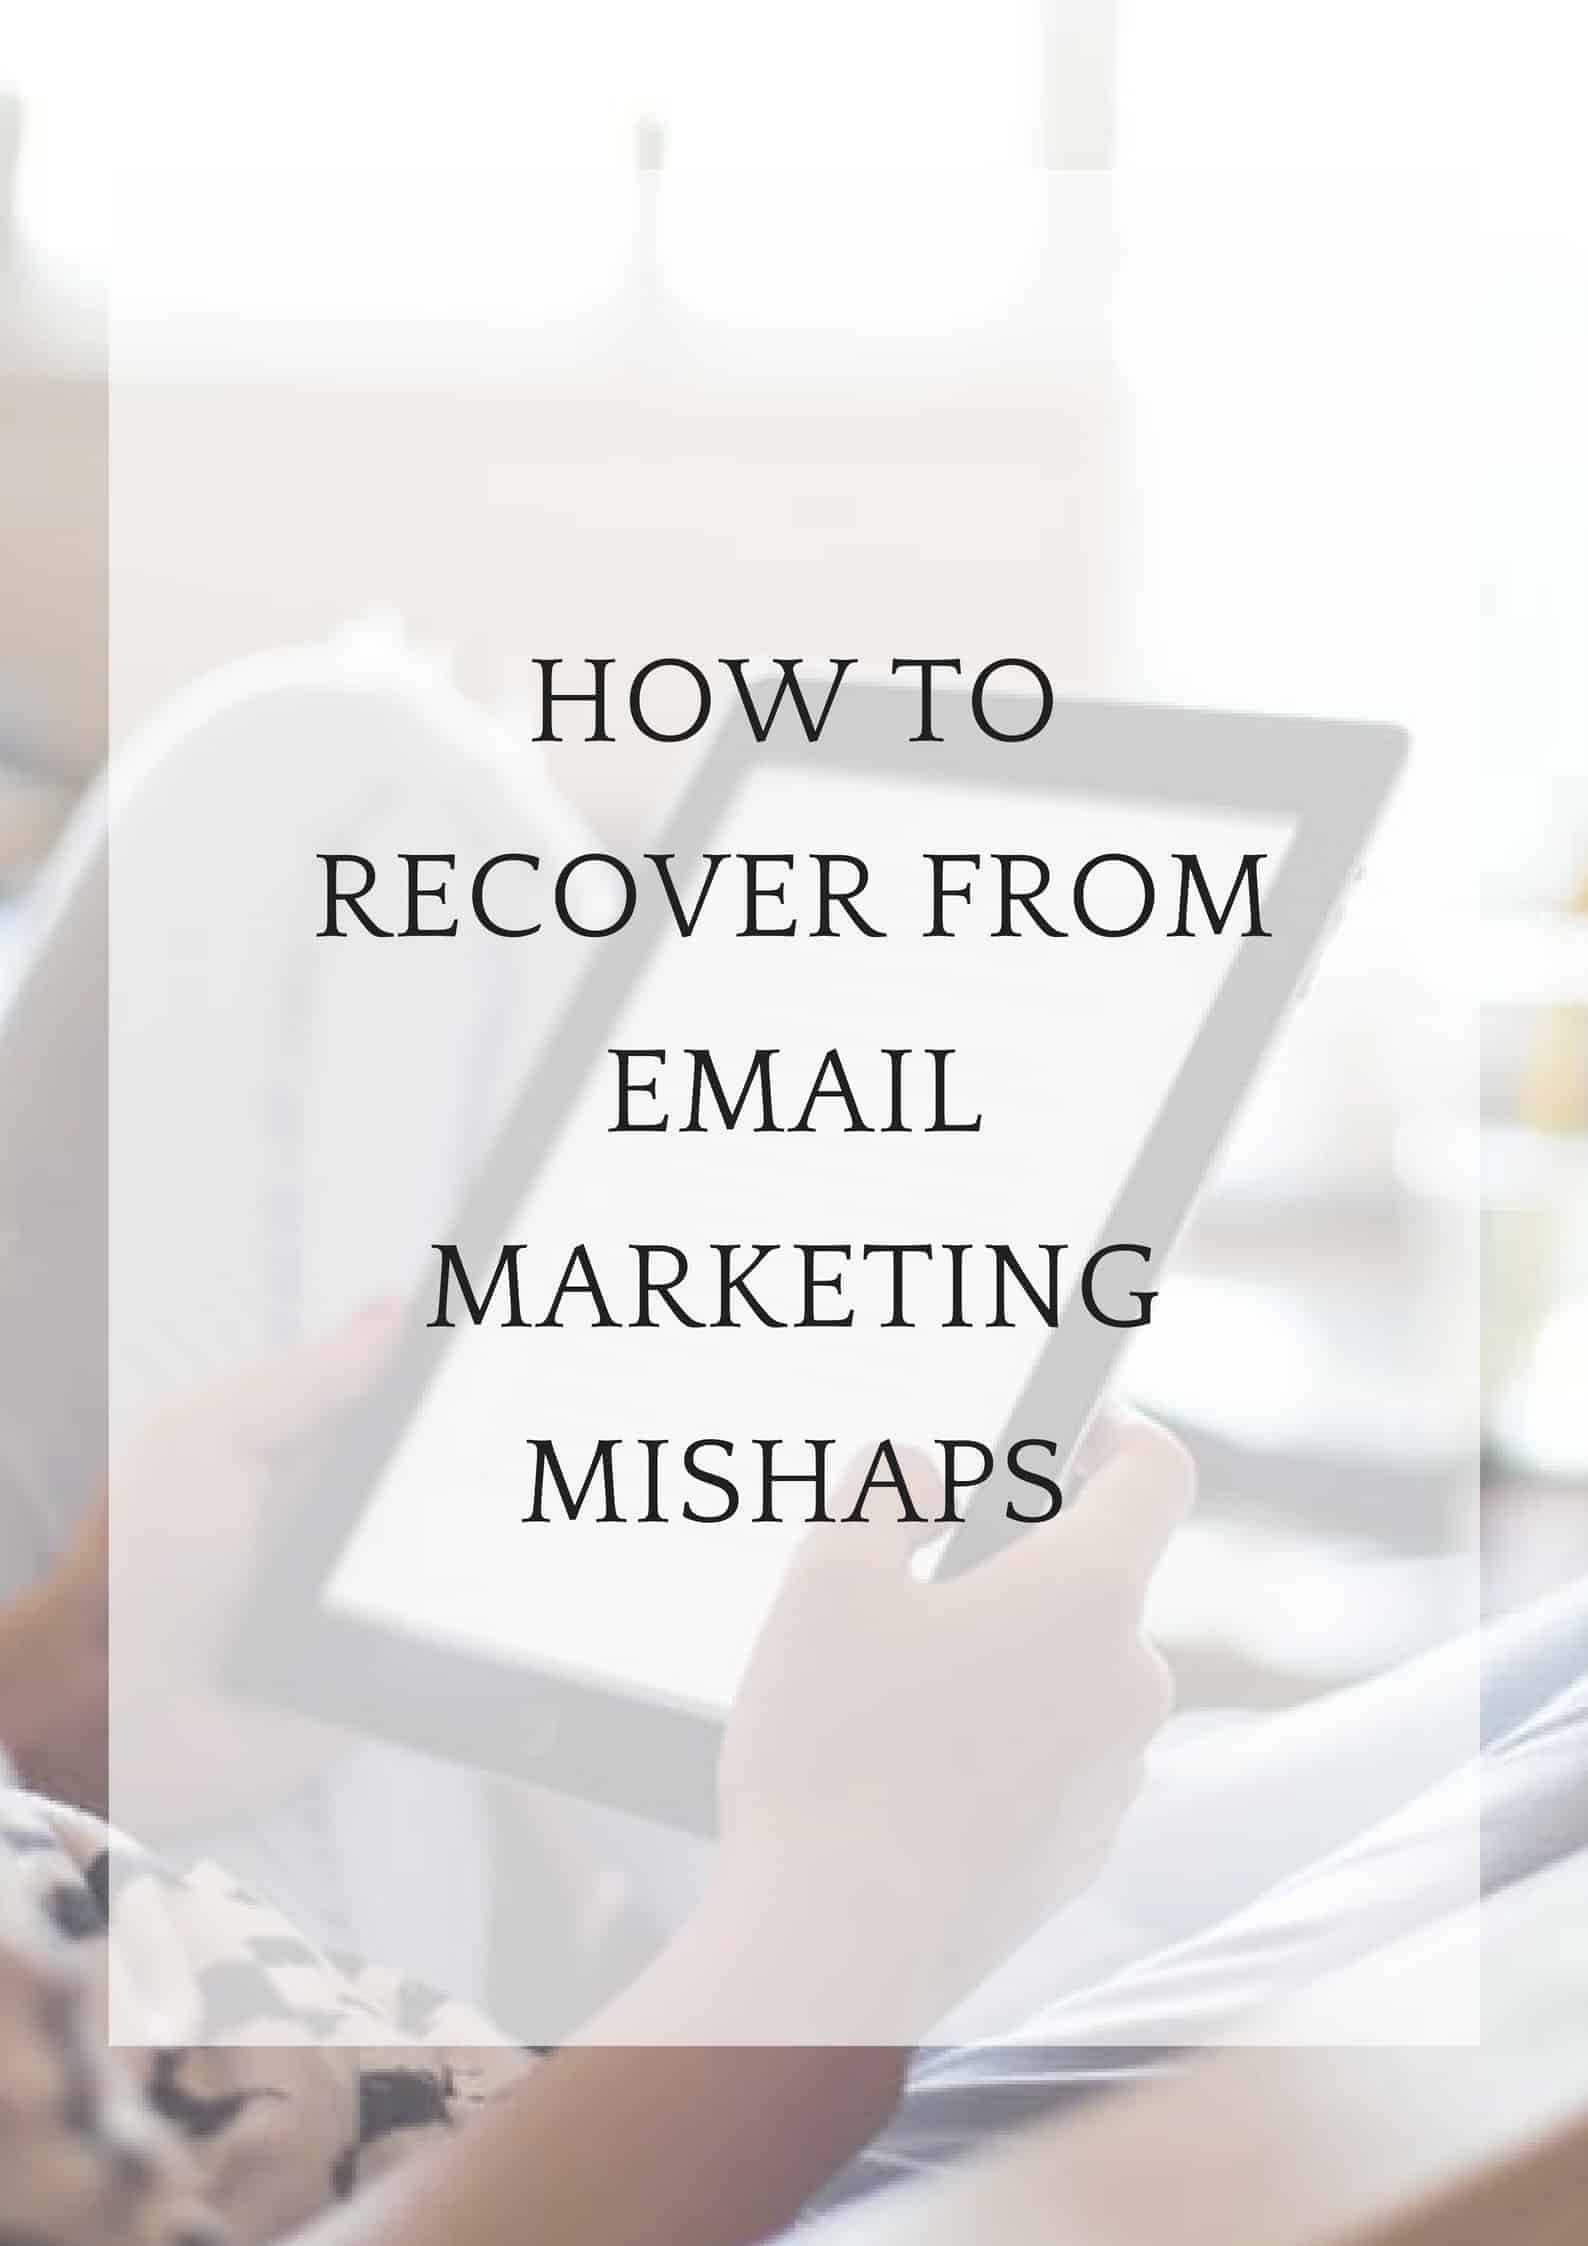 image with text over: how to recover from email marketing mishaps